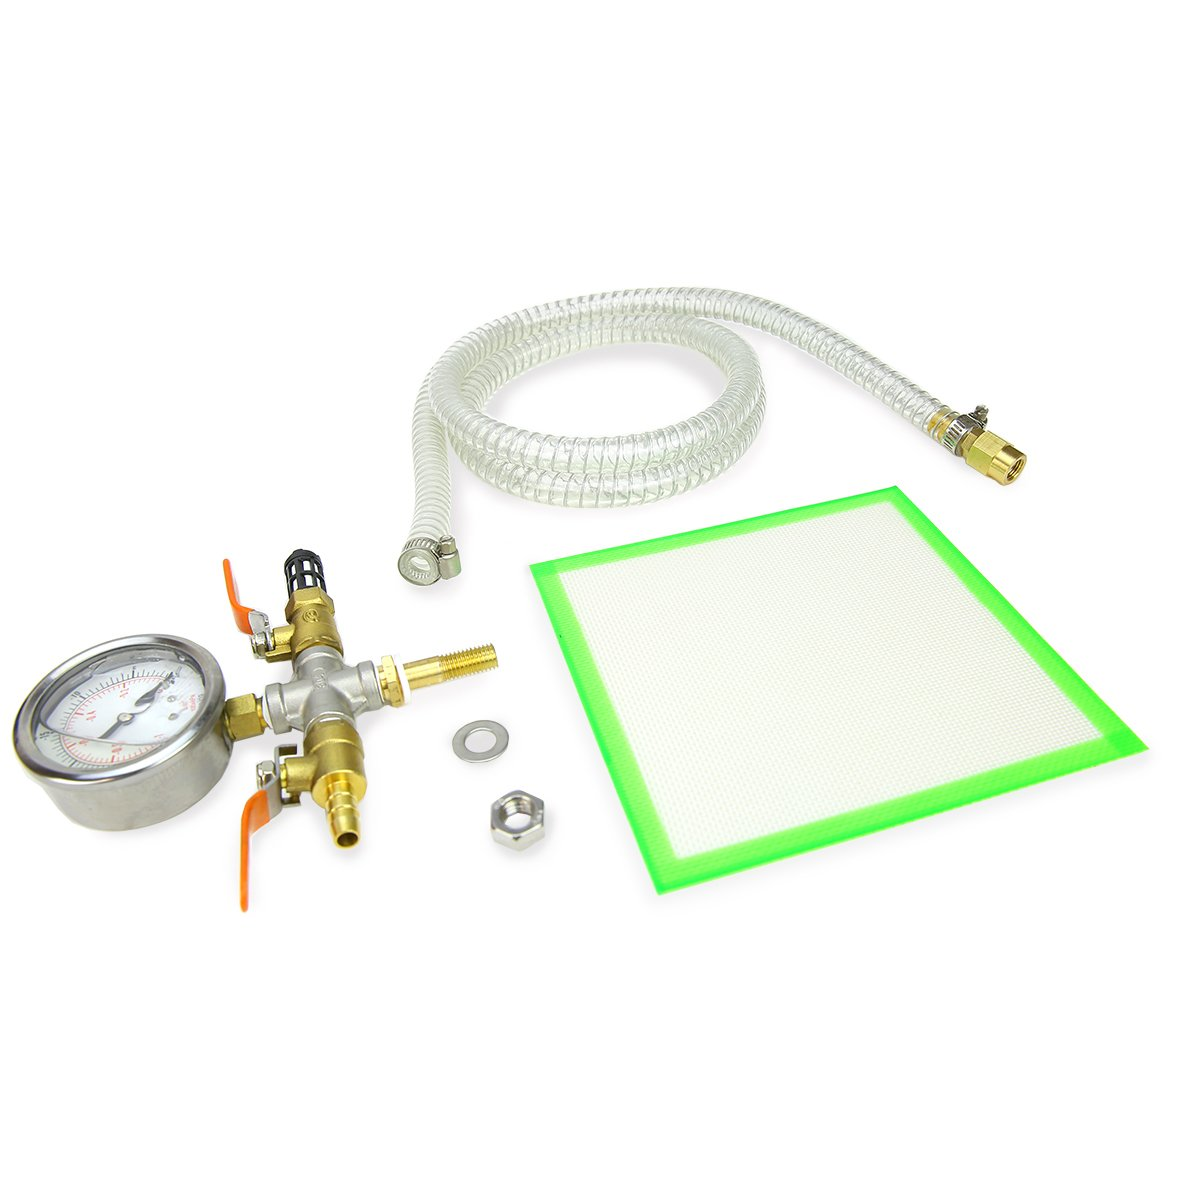 XtremepowerUS 4 CFM Single Stage Vacuum Pump 5 Gallons Chamber Kit Degass Urethanes Silicones and Epoxies